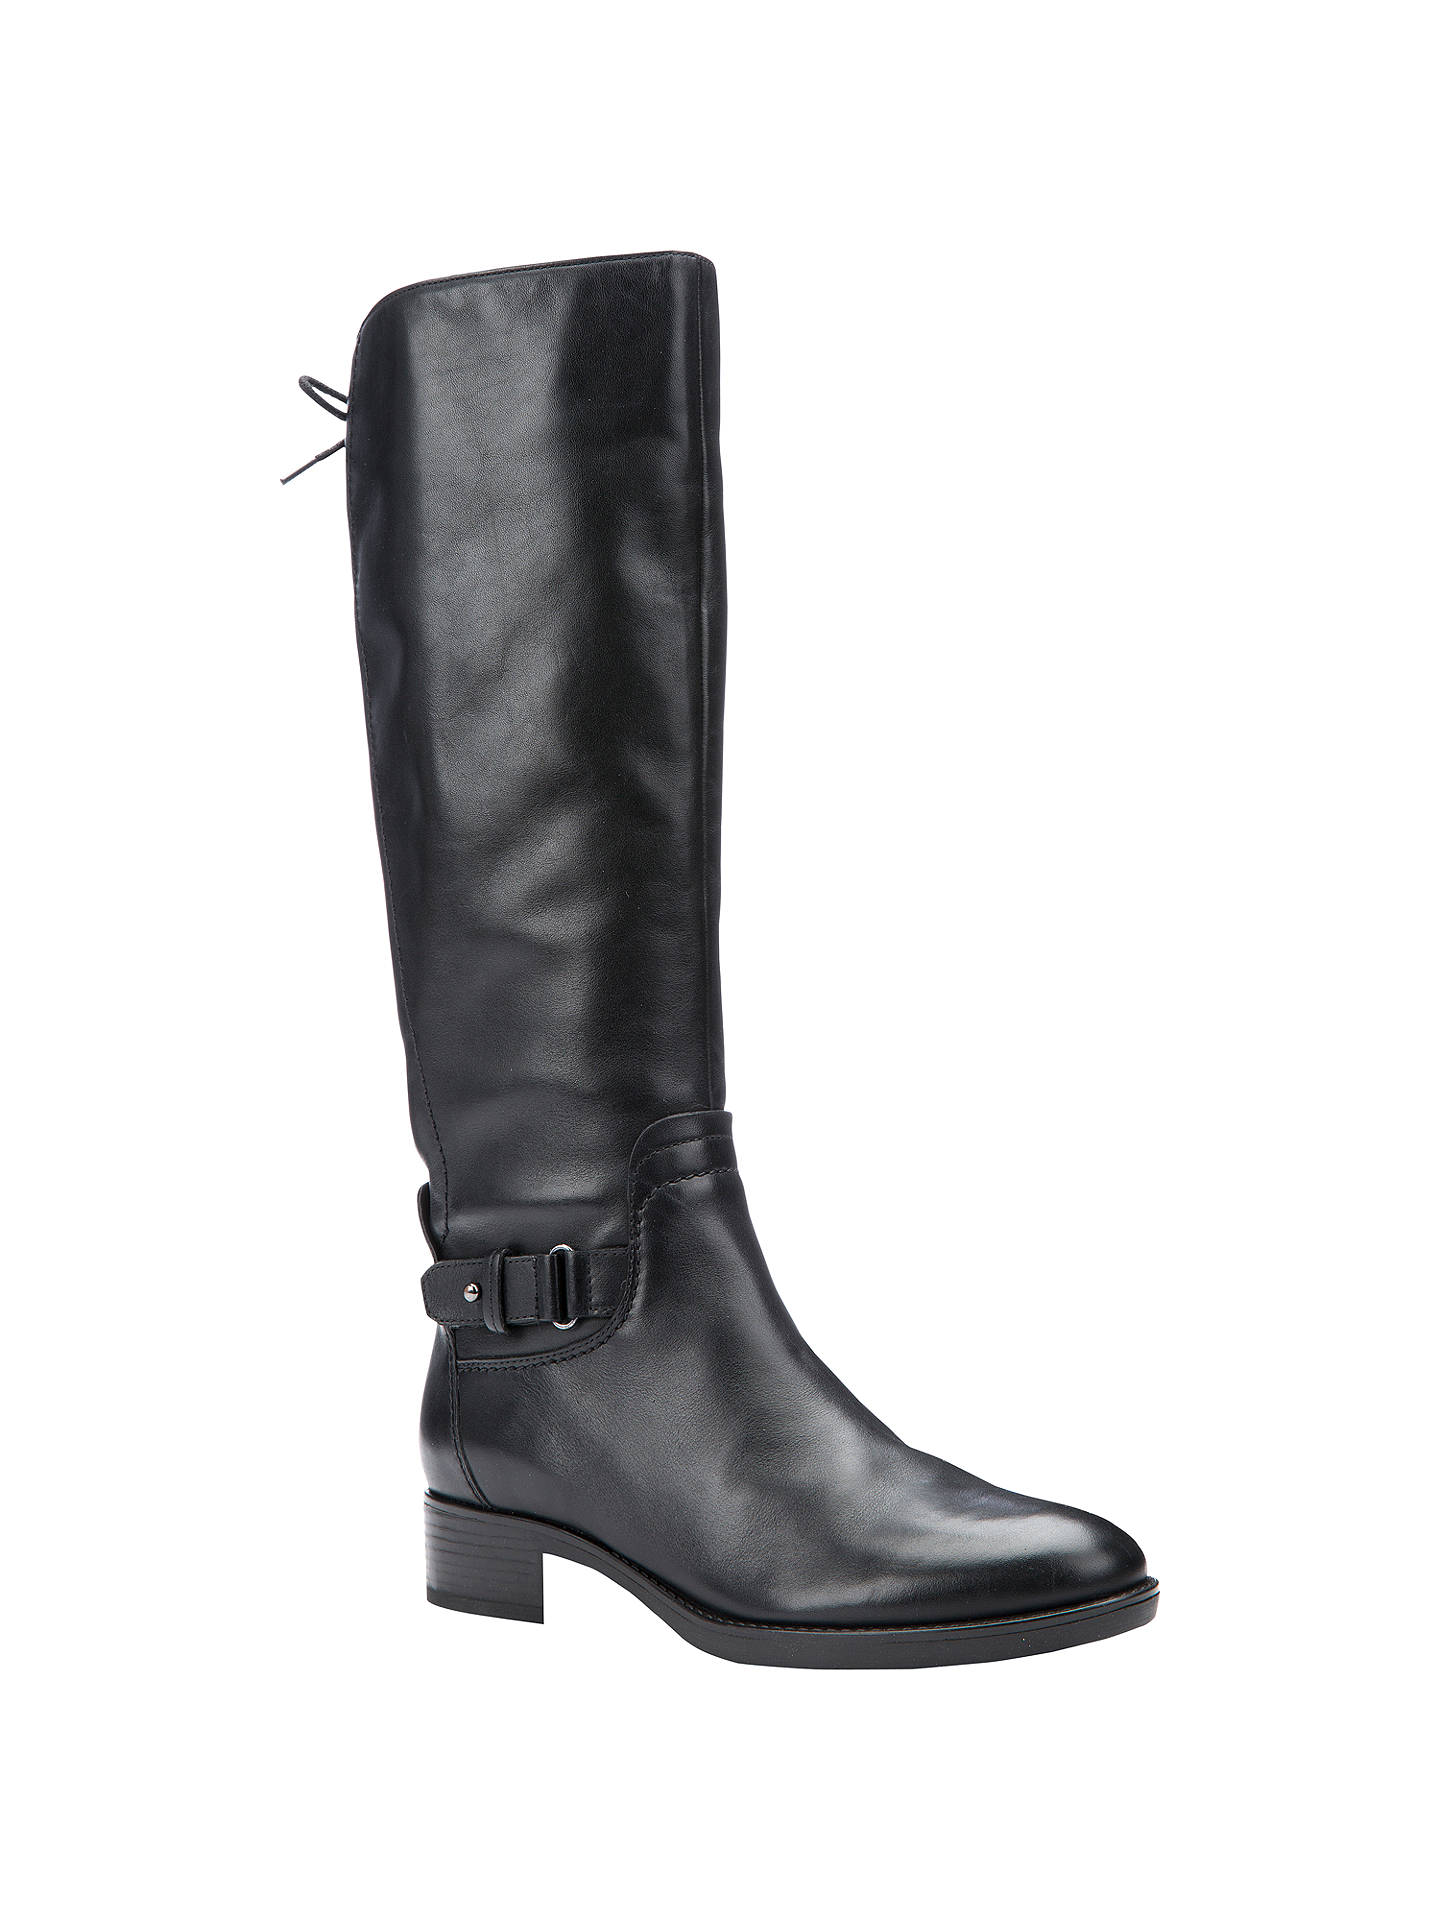 Geox Respira black leather knee high riding boots side zip